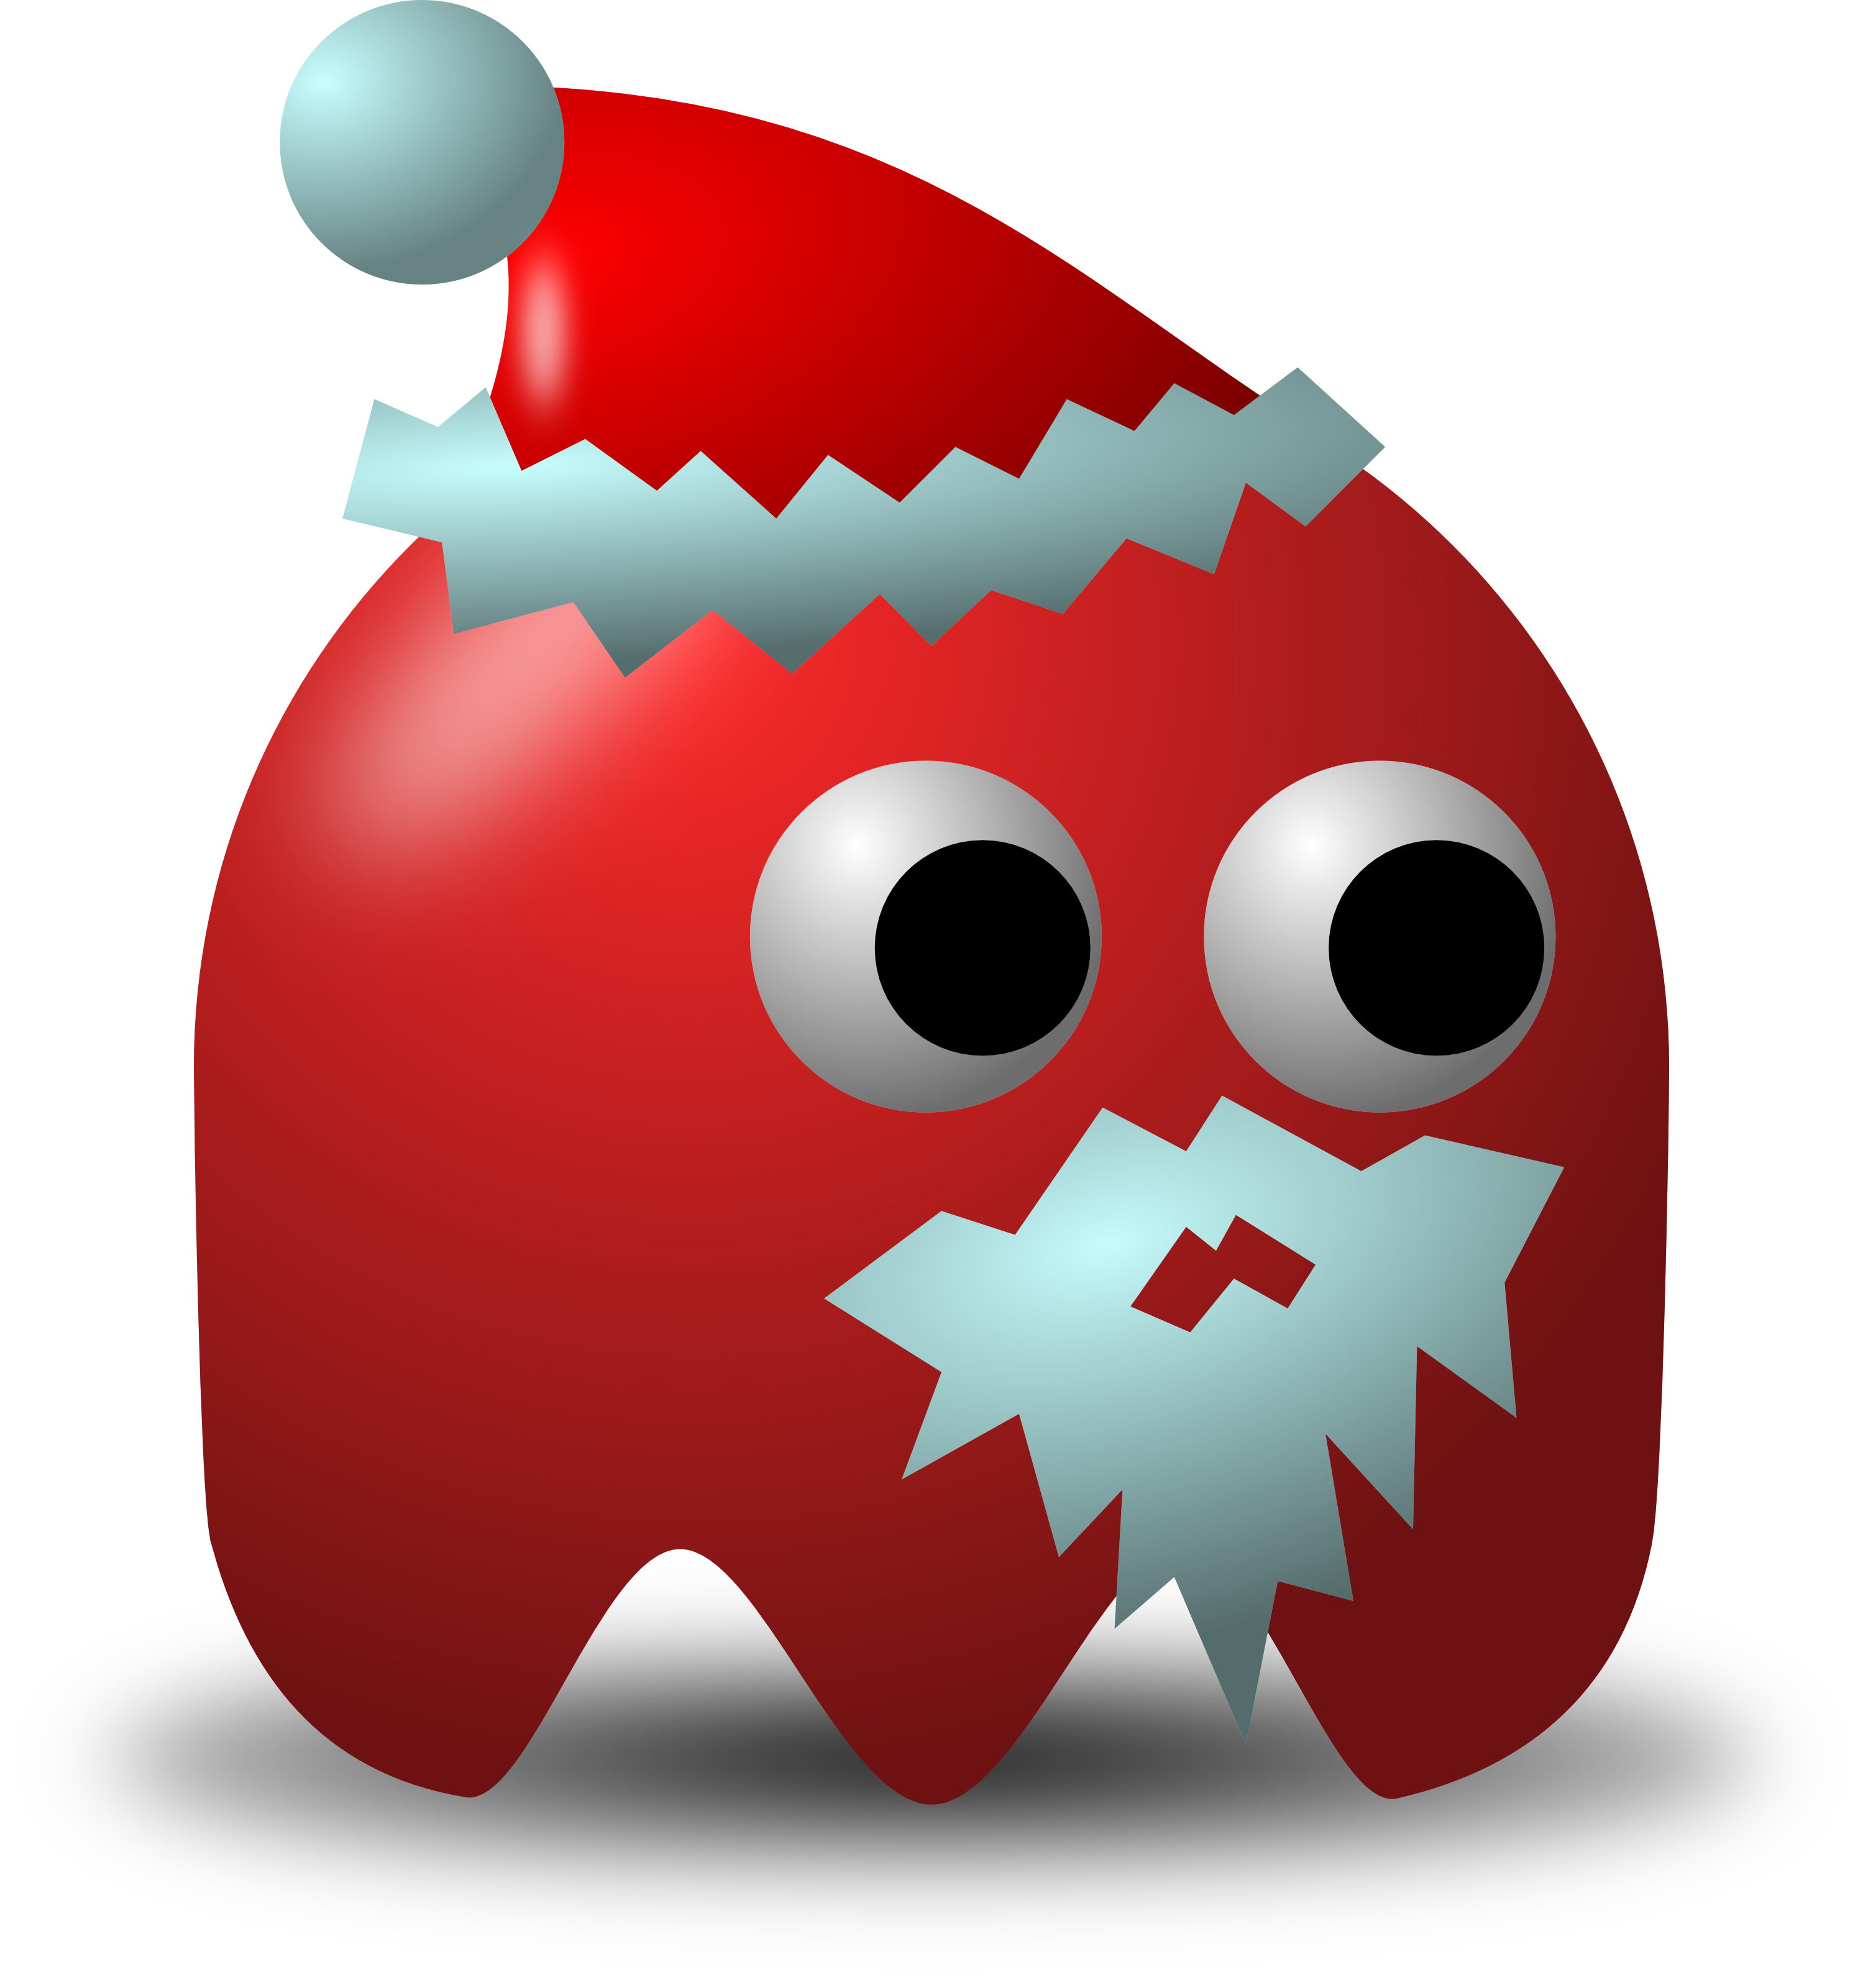 jpg png svg free vector clipart illustration of santa claus avatar character - Free Santa Claus Pictures